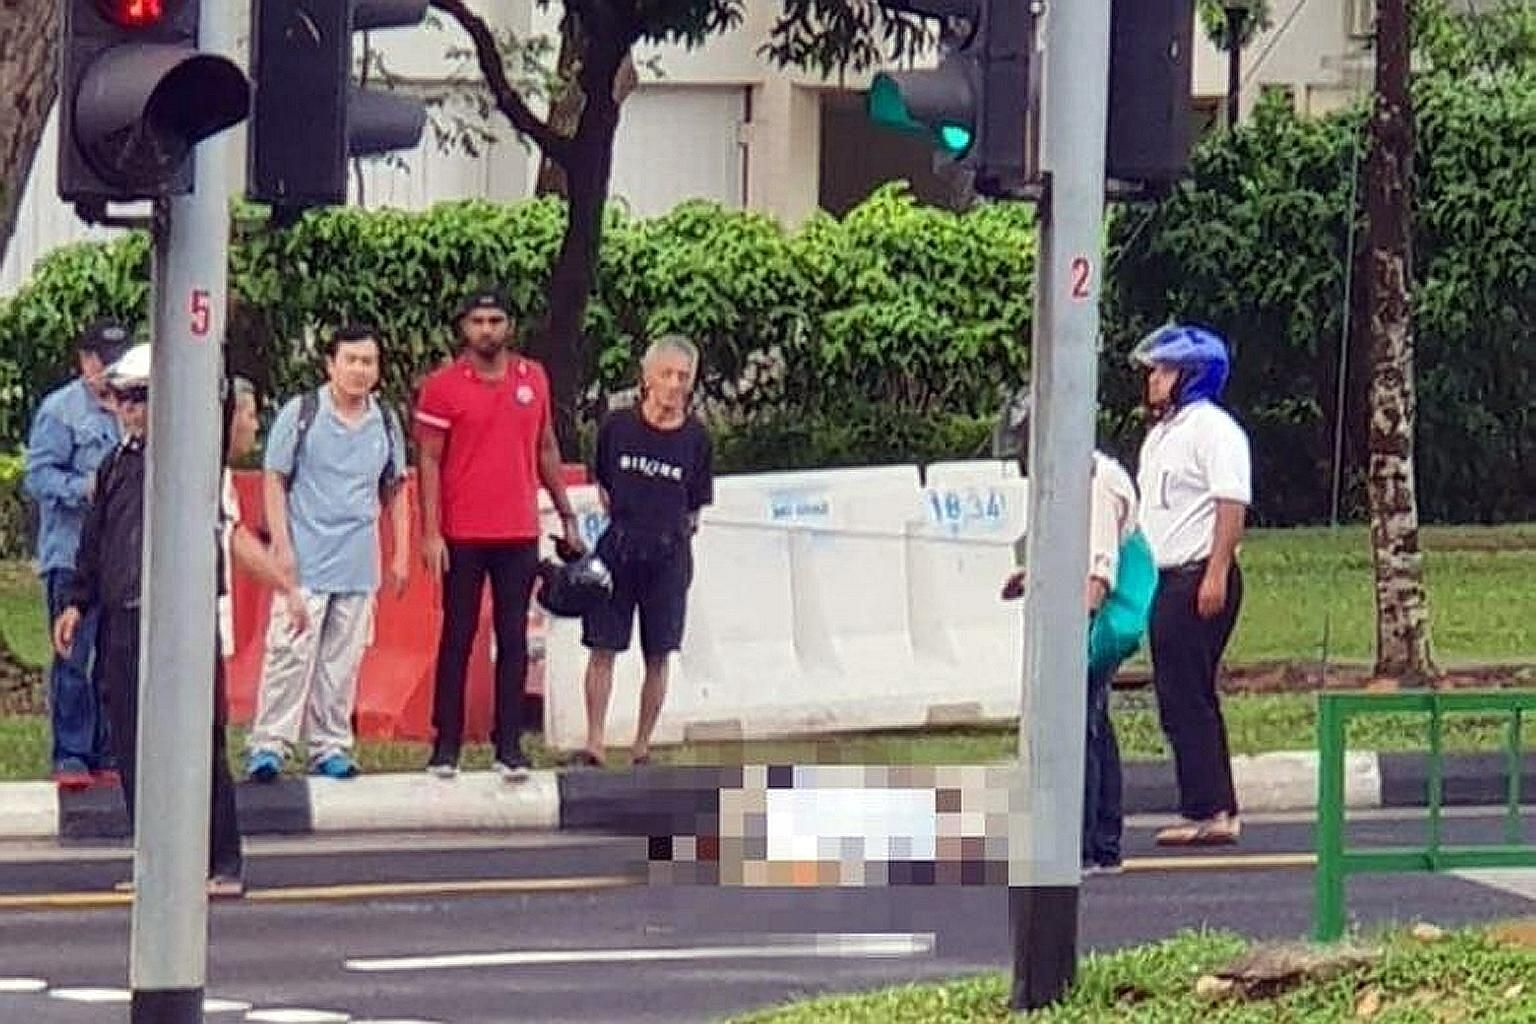 An 80-year-old man was crossing Woodlands Avenue 3 on Wednesday evening when he was hit by a minibus as it travelled towards Woodlands Avenue 5 at about 5.45pm.